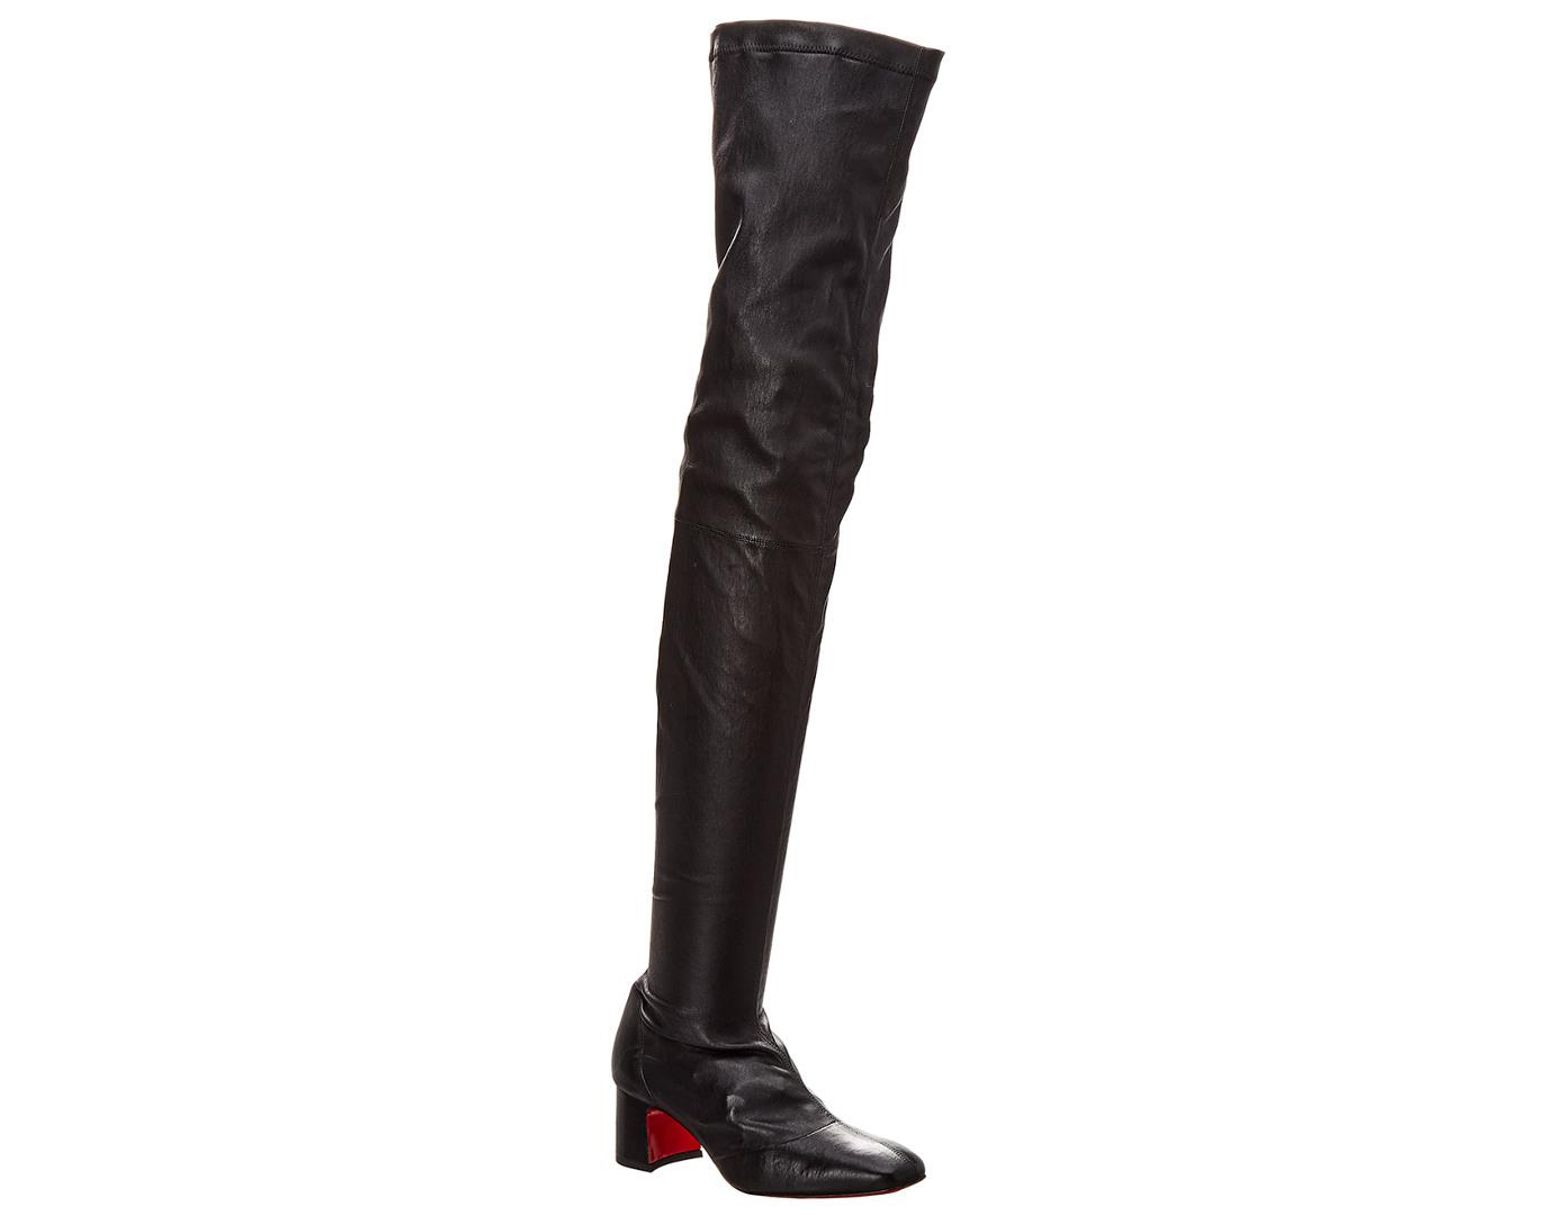 787a75a4153 Christian Louboutin Sursamoto 55 Leather Over-the-knee Boot in Black ...